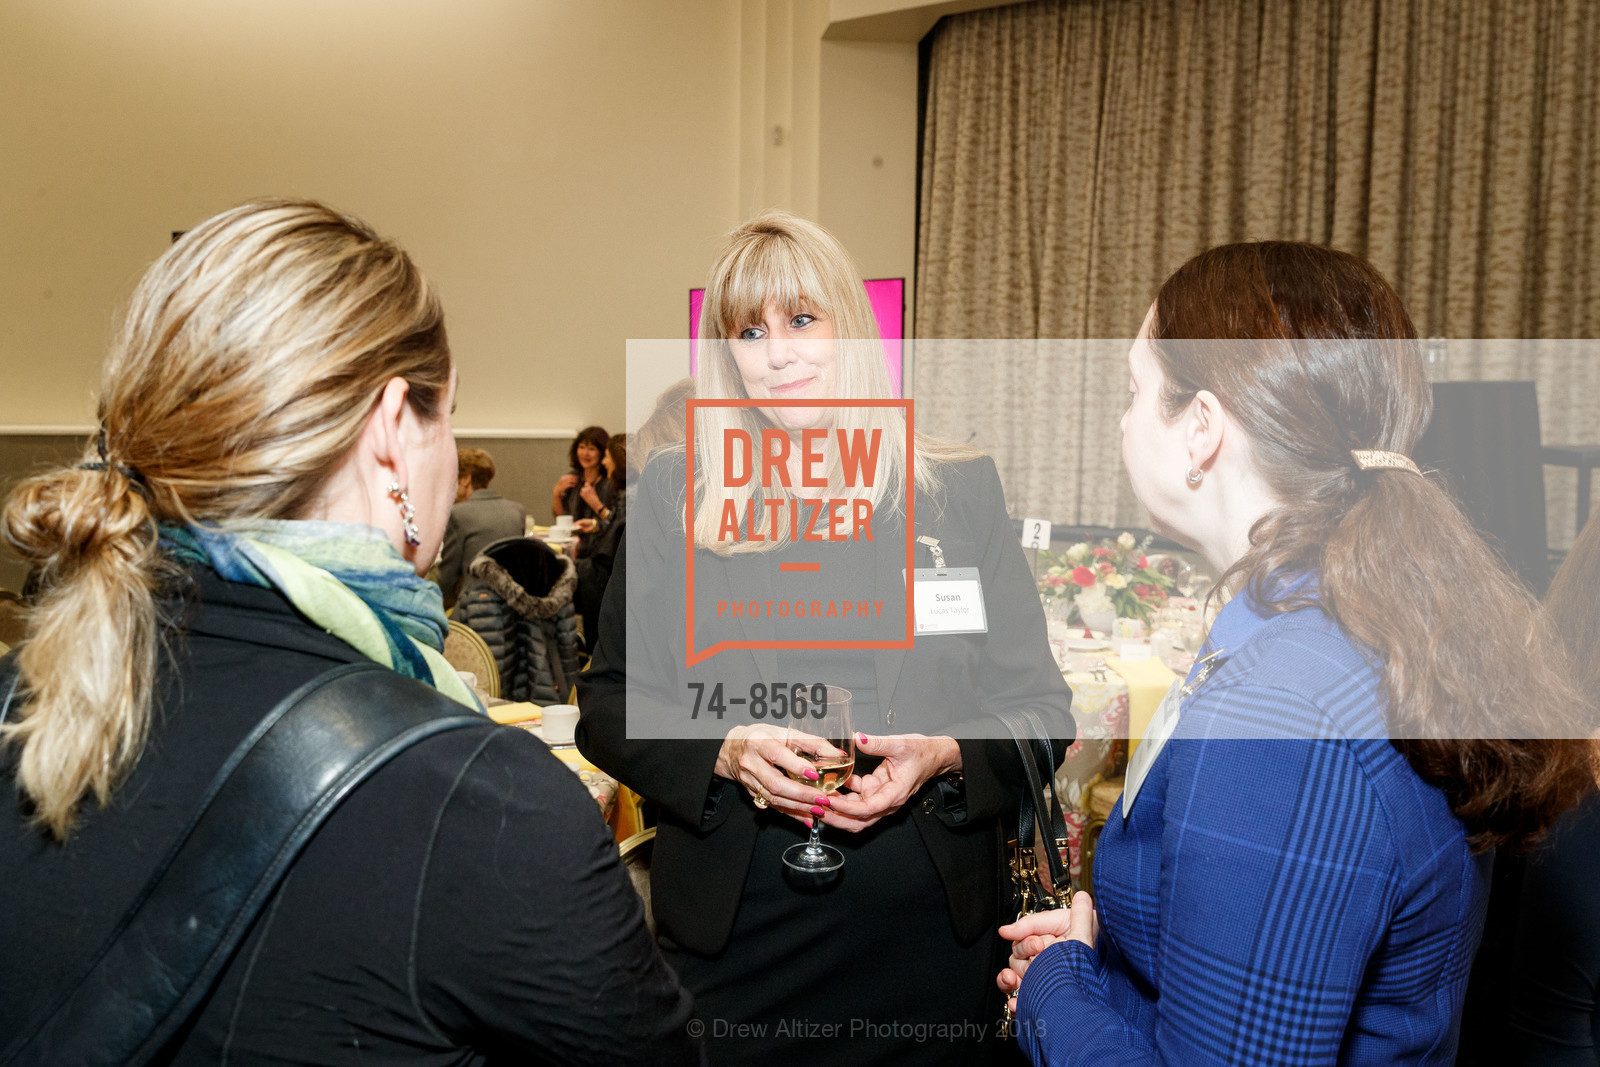 Susan Lucas Taylor at Stanford's Women's Health Luncheon